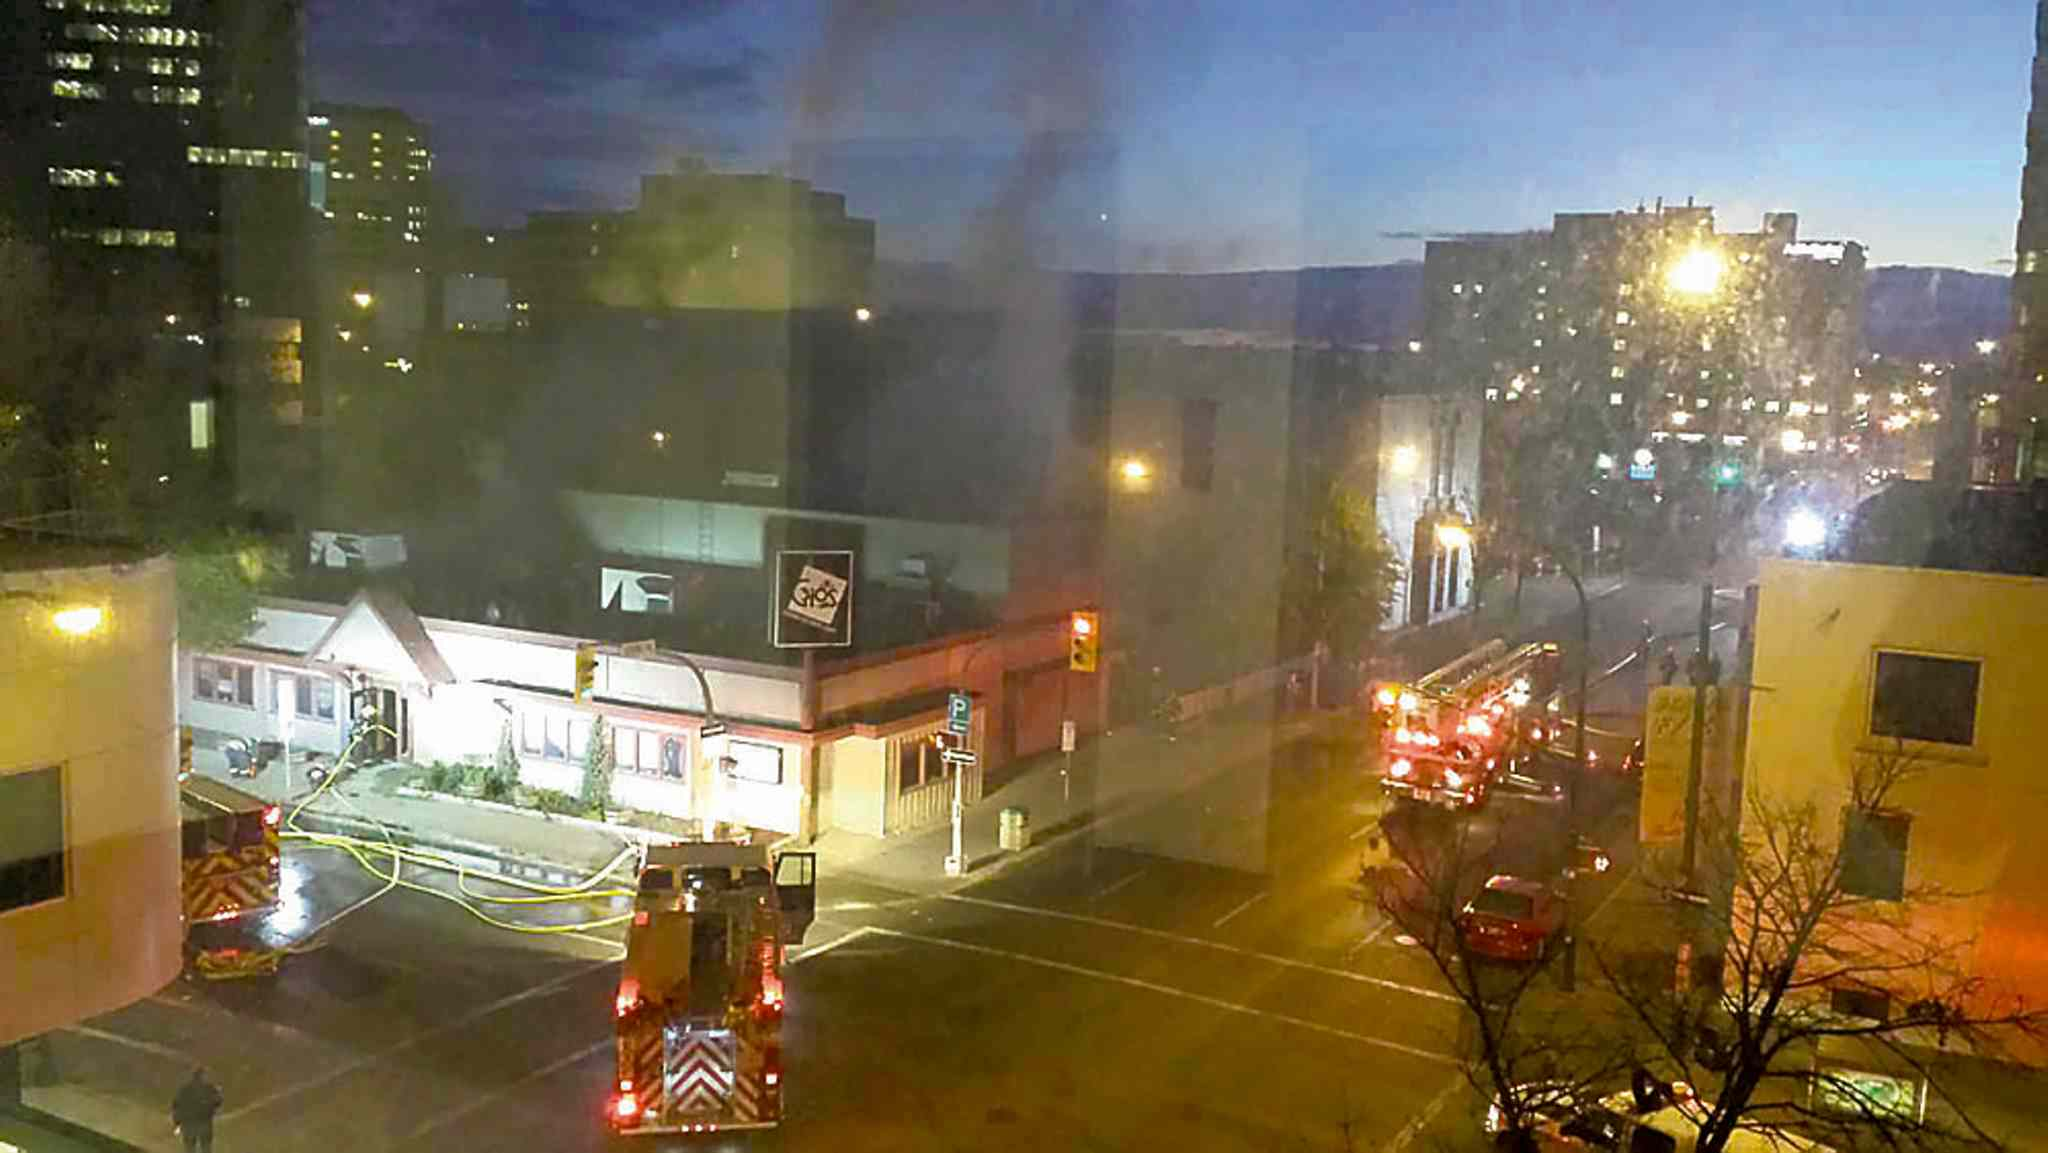 Crews respond to a fire at the former Gio's Club and Bar at the corner of Smith Street and York Avenue Saturday morning. The business closed in February.